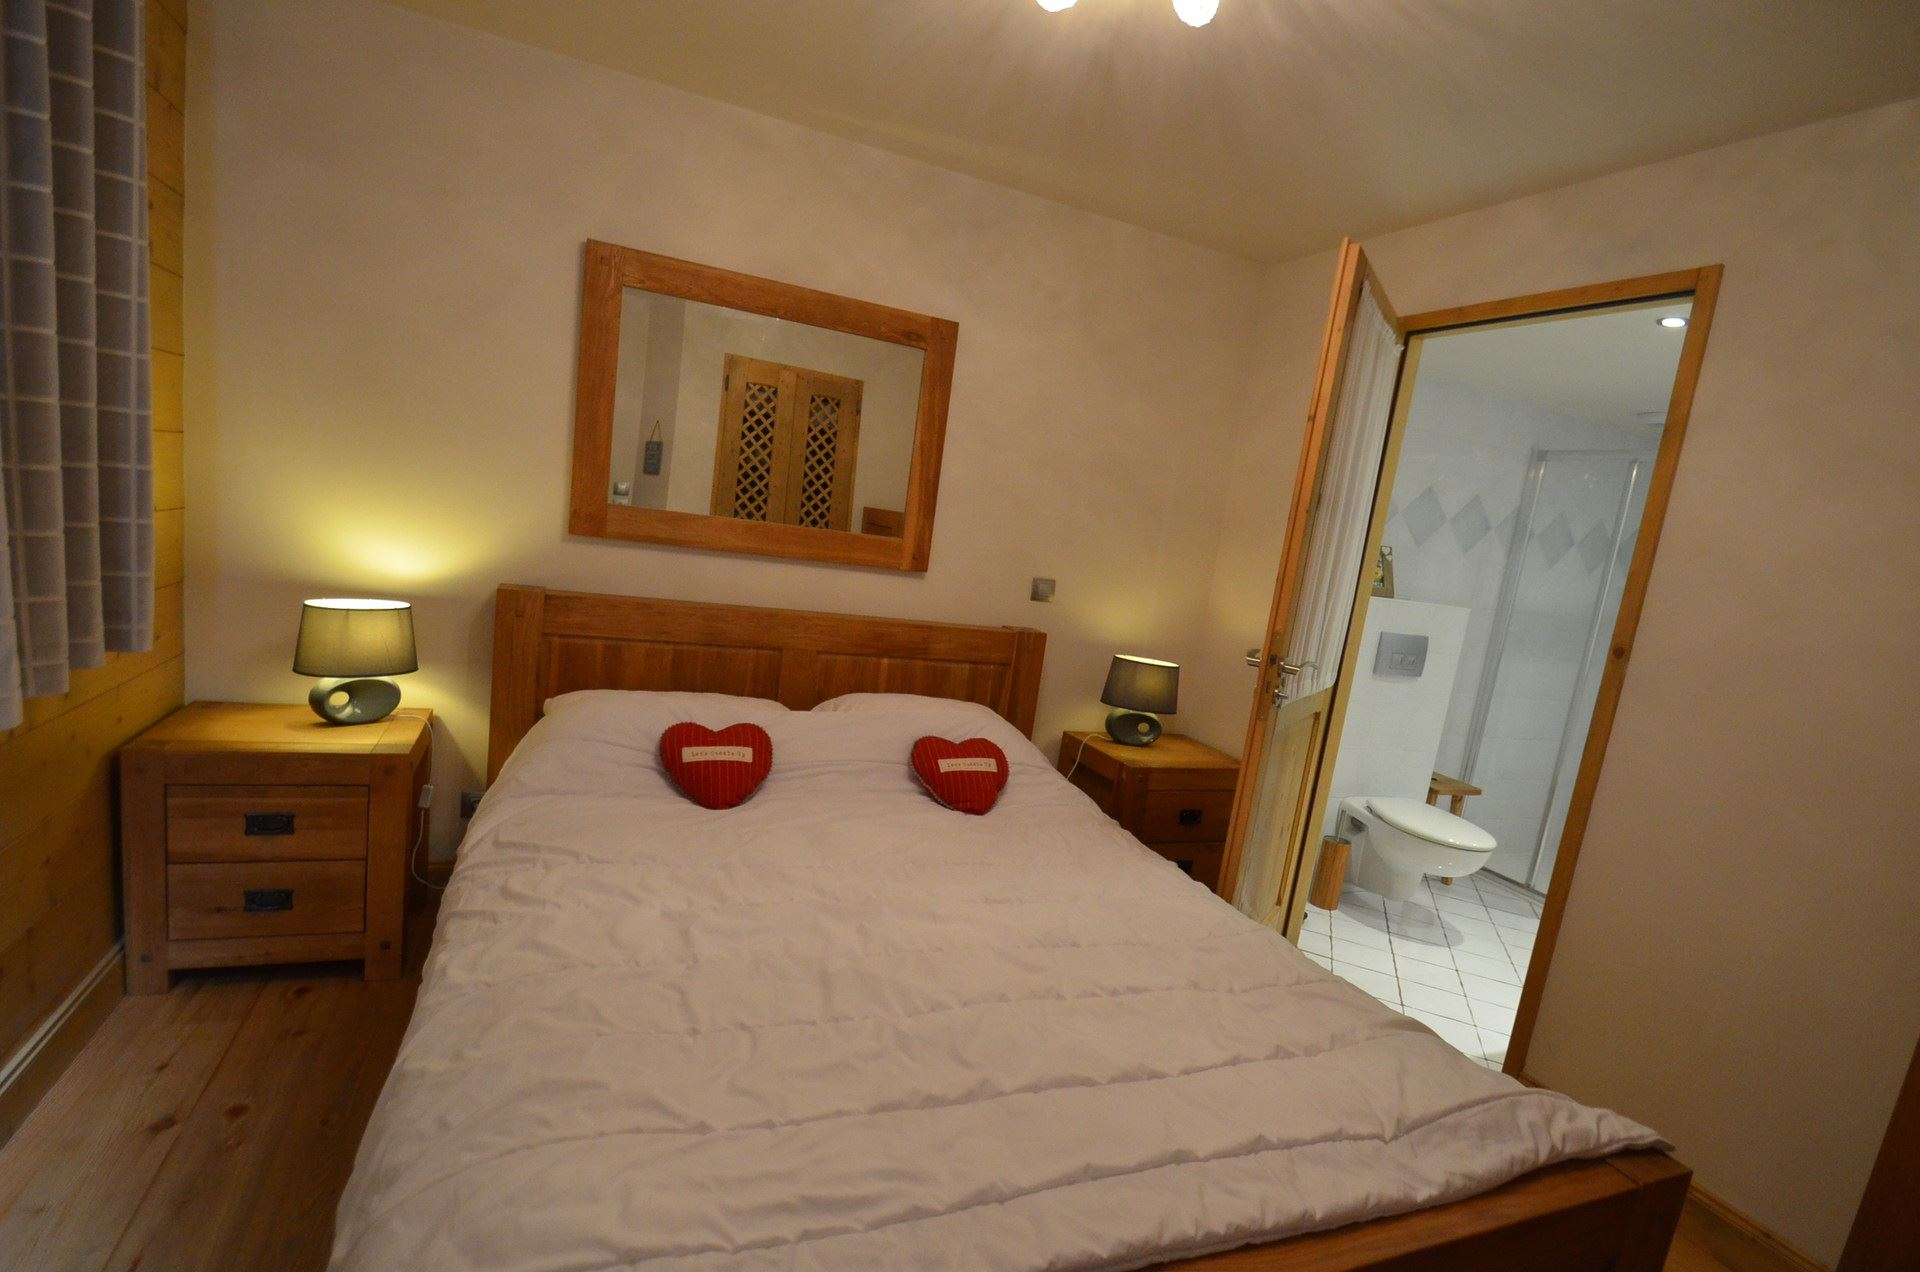 4 Rooms 6 Pers ski-in ski-out / CHALET ADELE 4